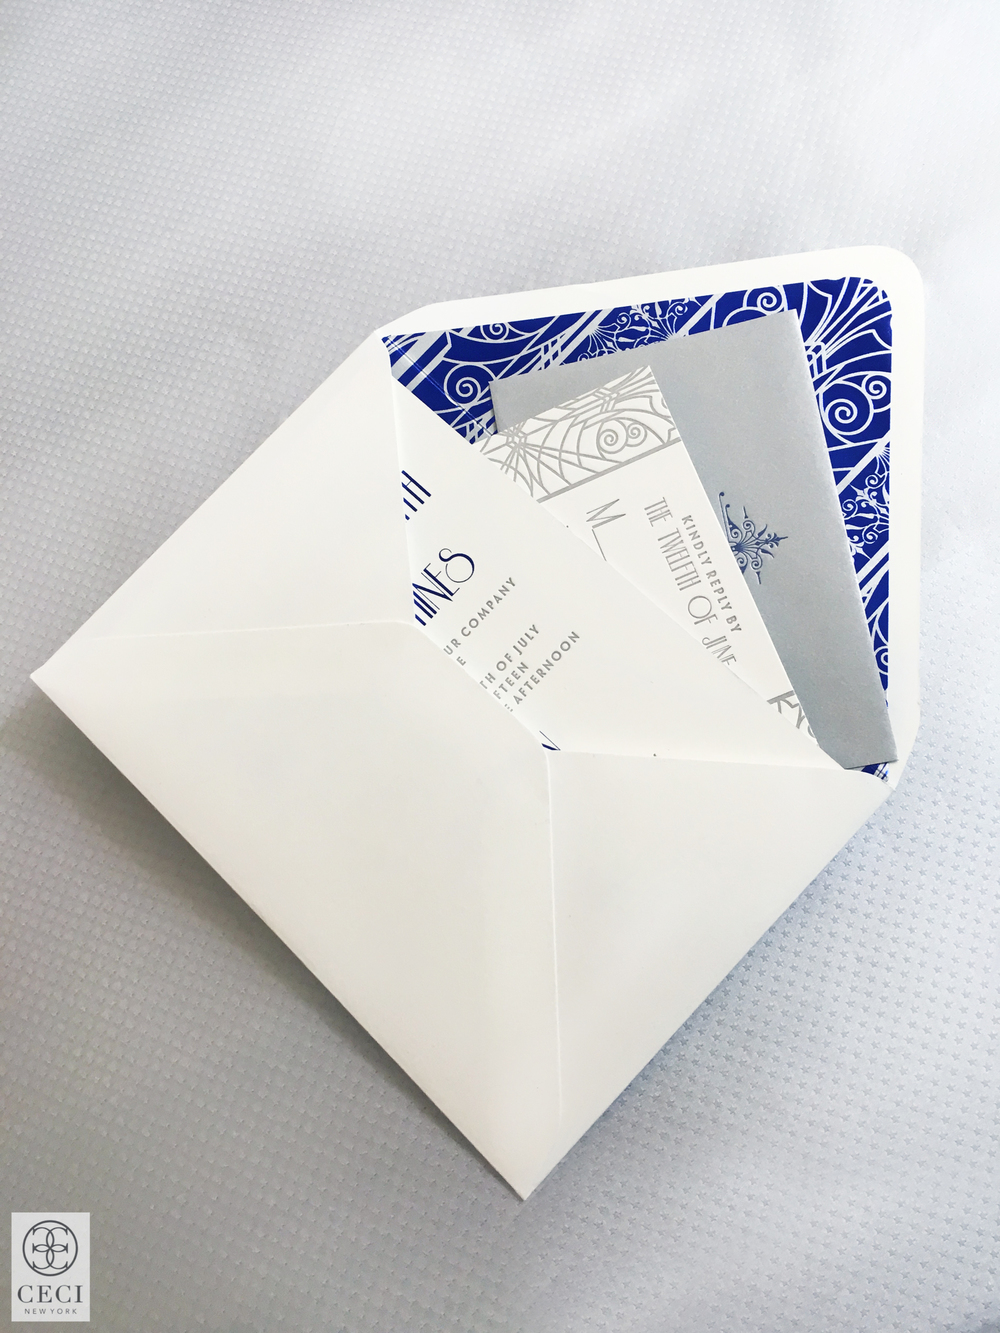 Ceci_New_York_New_Jersey_Invitations_Wedding_New_York_Elegance_Silver_Blue_Letterpress_Deco_Classic_Foil_Stamping_Custom_Couture_Personalized-24.jpg